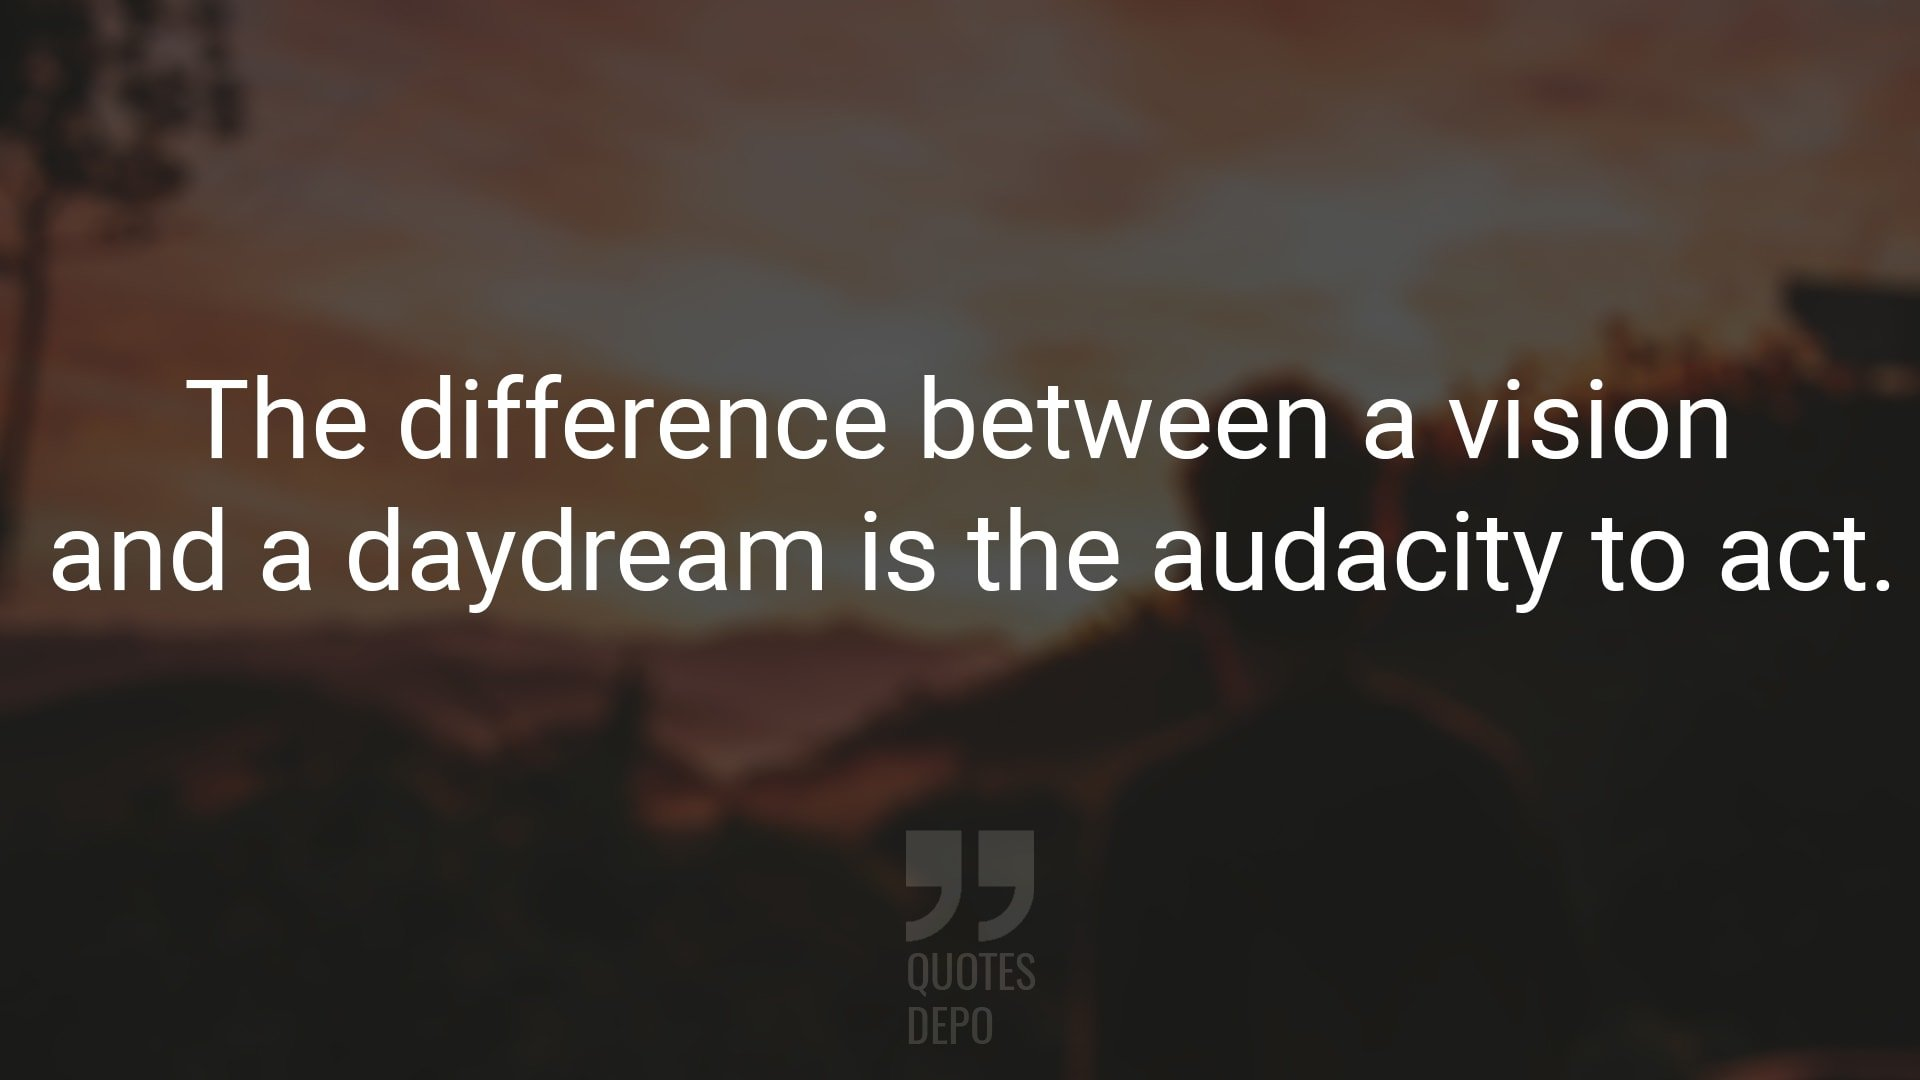 The Difference Between a Vision and a Daydream